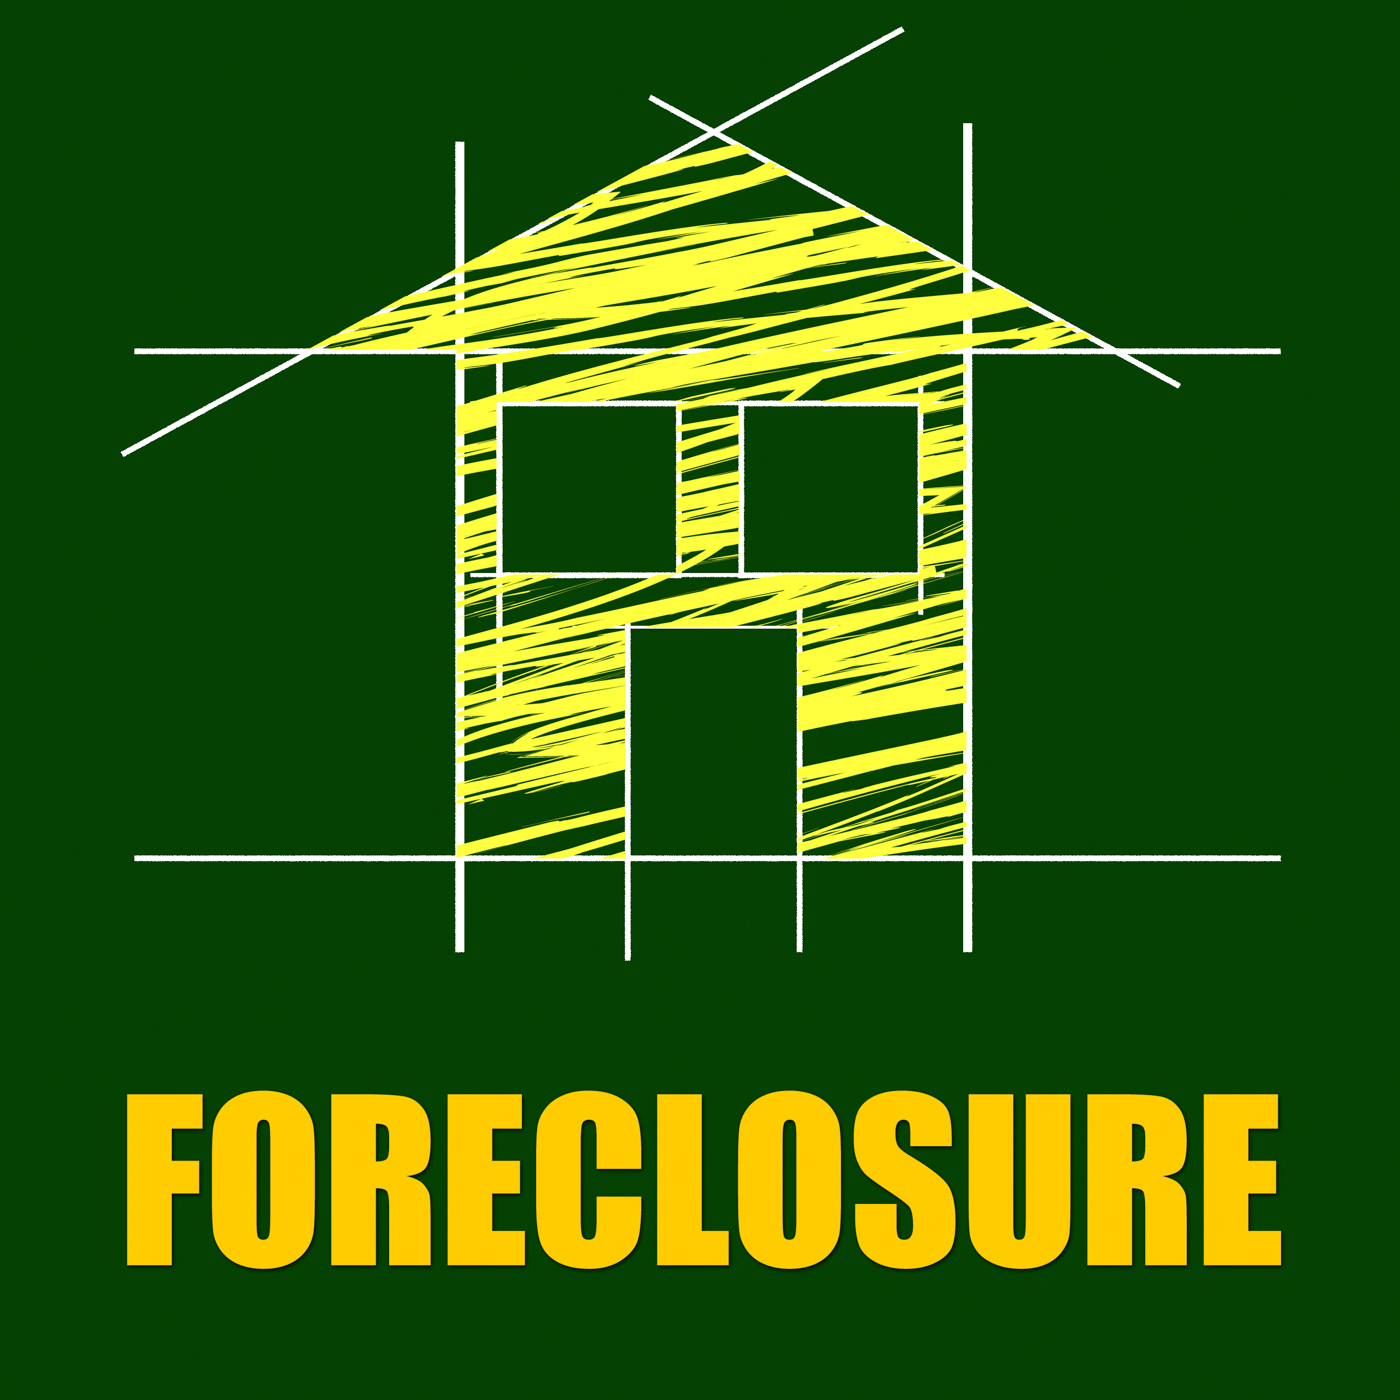 Foreclosure House Indicates Repayments Stopped And Apartment, Apartment, House, Residential, Residence, HQ Photo